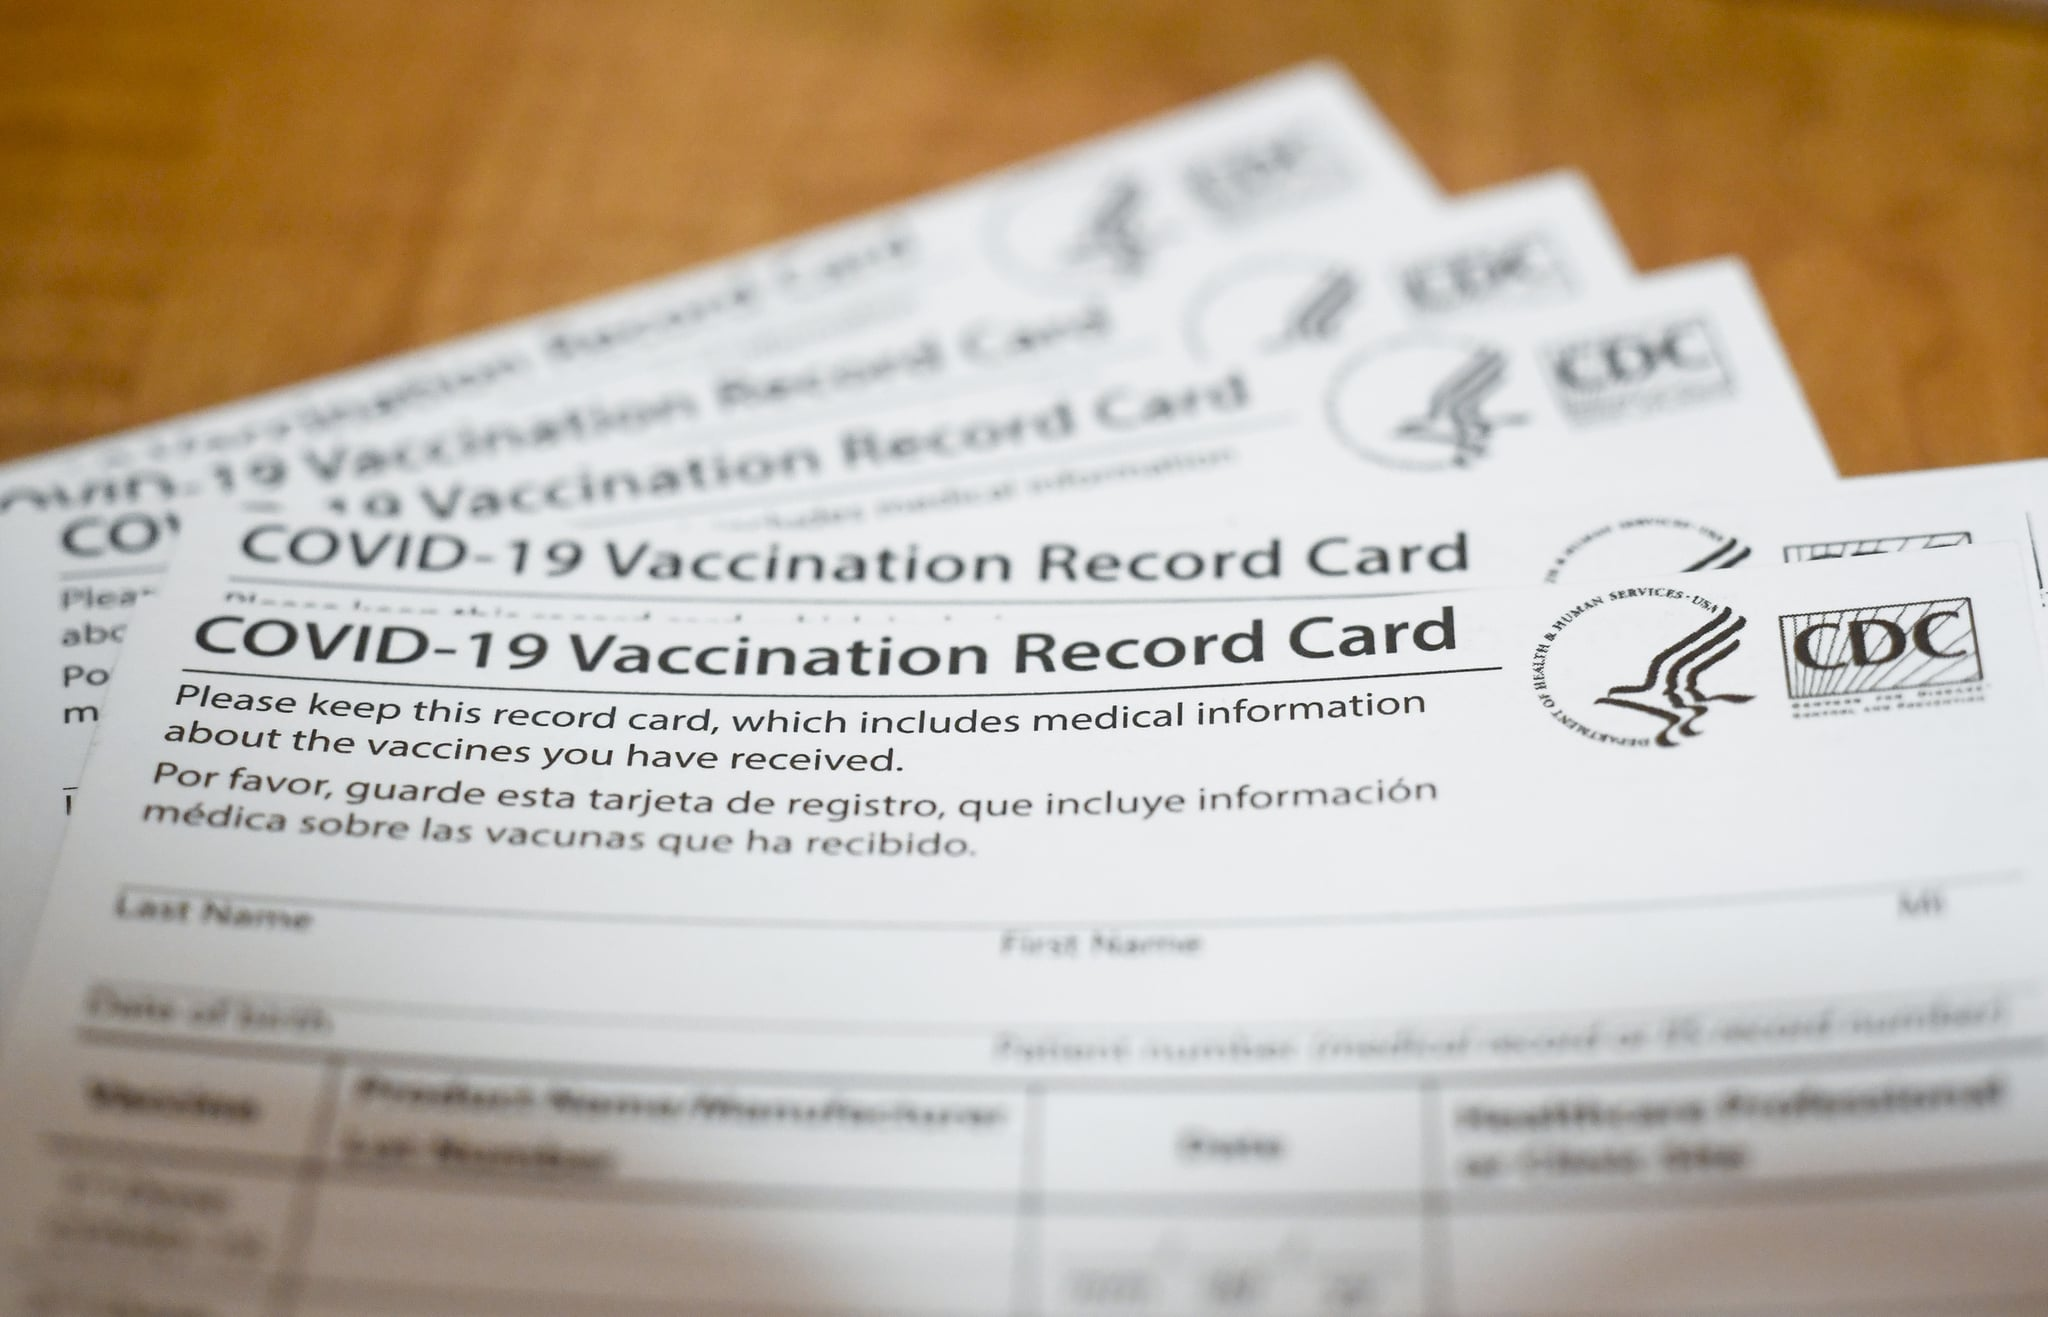 Bern Township, PA - January 29: A COVID-19 Vaccination Record Card from the CDC (Centers for Disease Control and Prevention). At the Berks Heim Nursing and Rehabilitation Center in Bern Township Friday morning January 29, 2021 where residents of the home, and staff are being vaccinated against COVID-19 / Coronavirus with the Pfizer-BioNTech vaccine. (Photo by Ben Hasty/MediaNews Group/Reading Eagle via Getty Images)